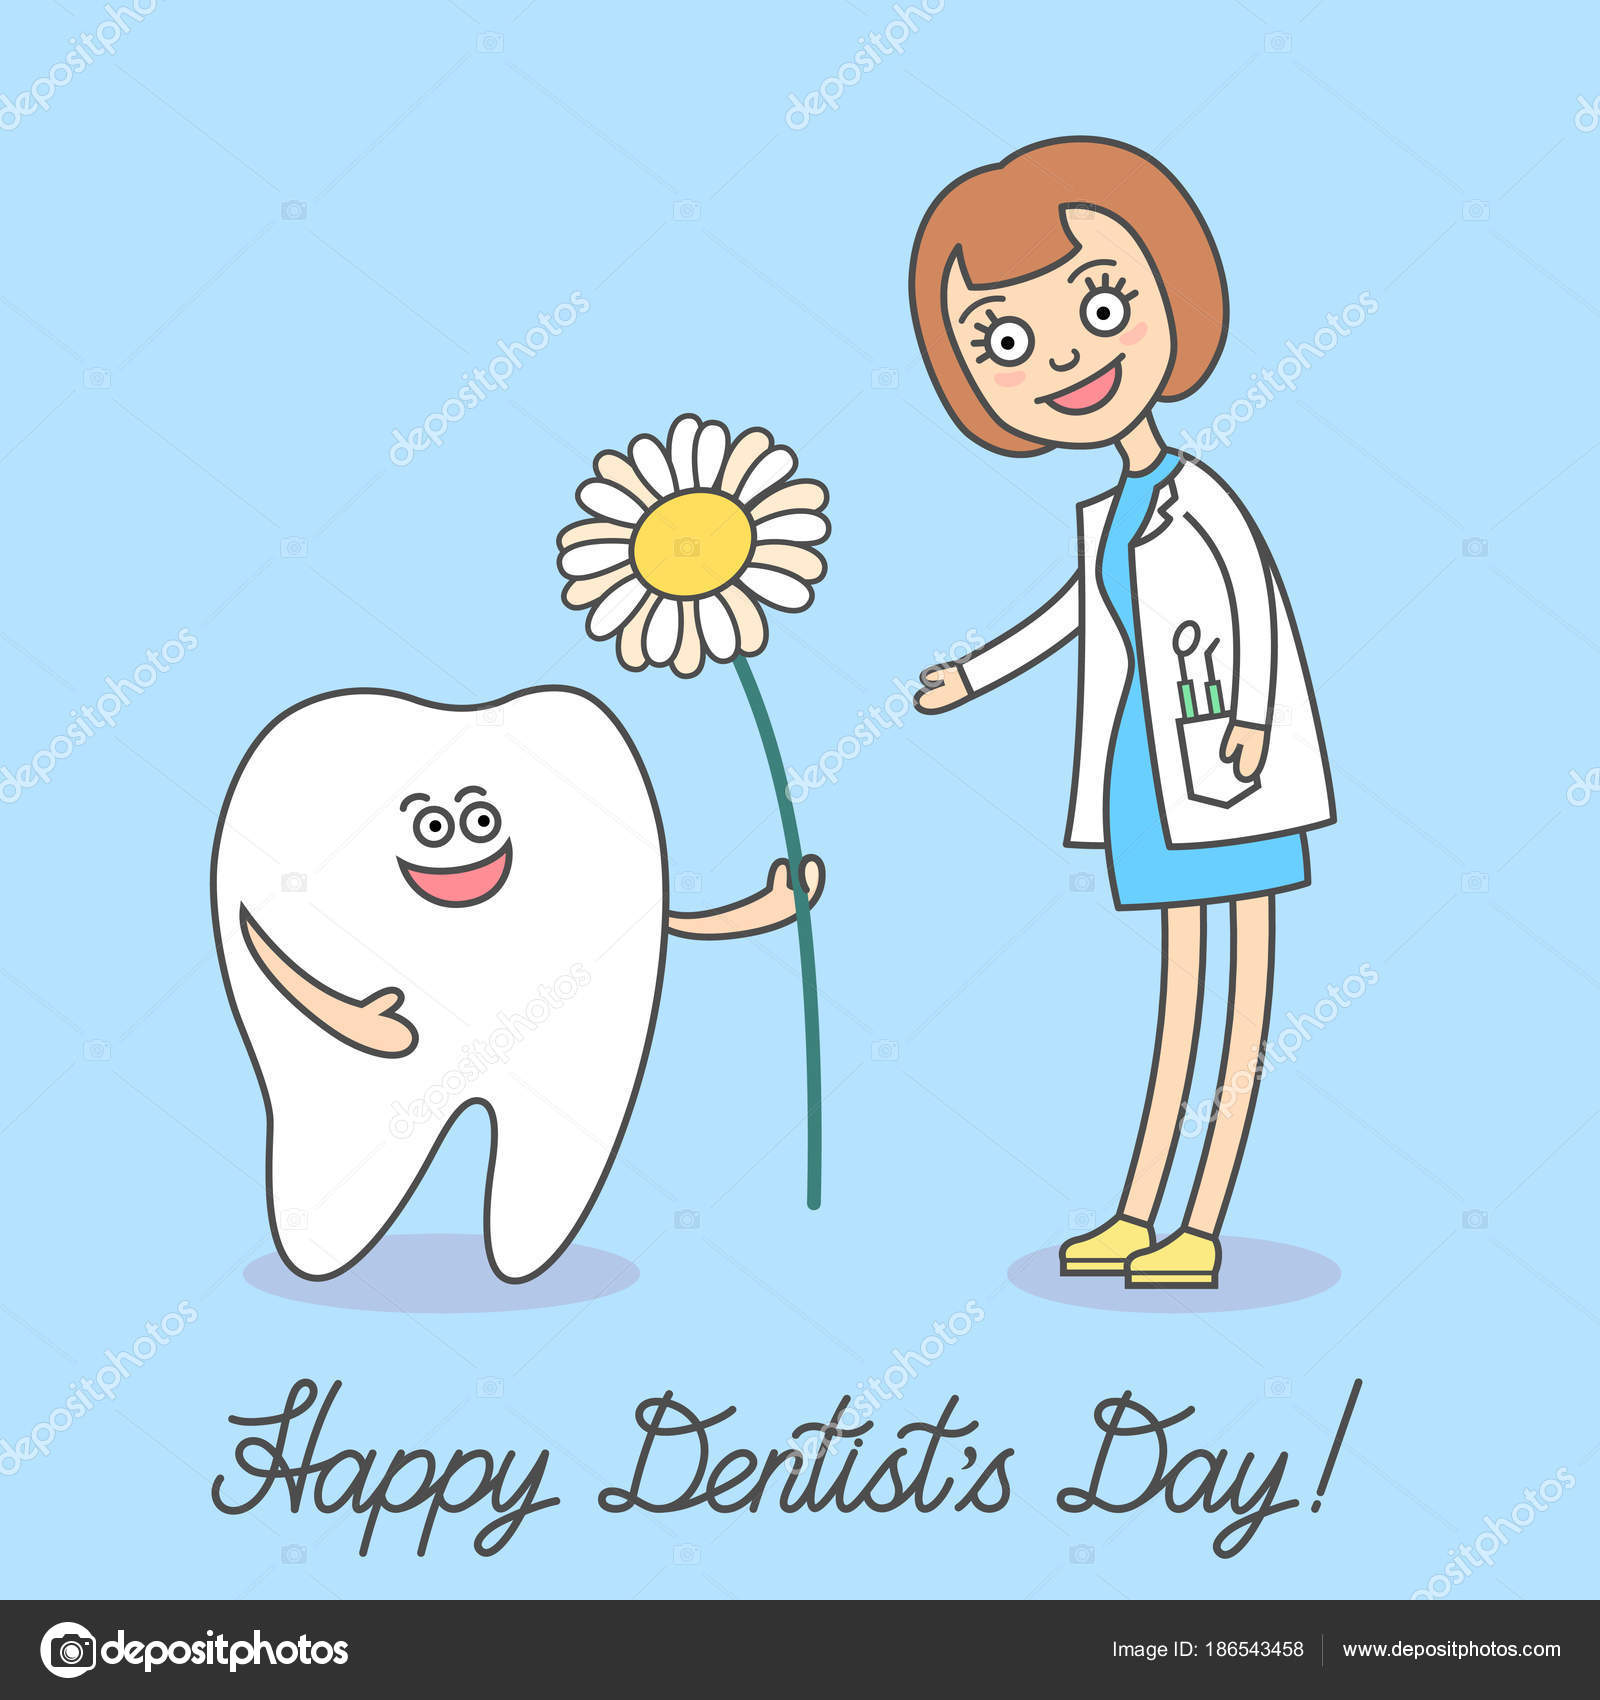 Dentistry quotes funny | Happy Dentist Day March Cartoon ...